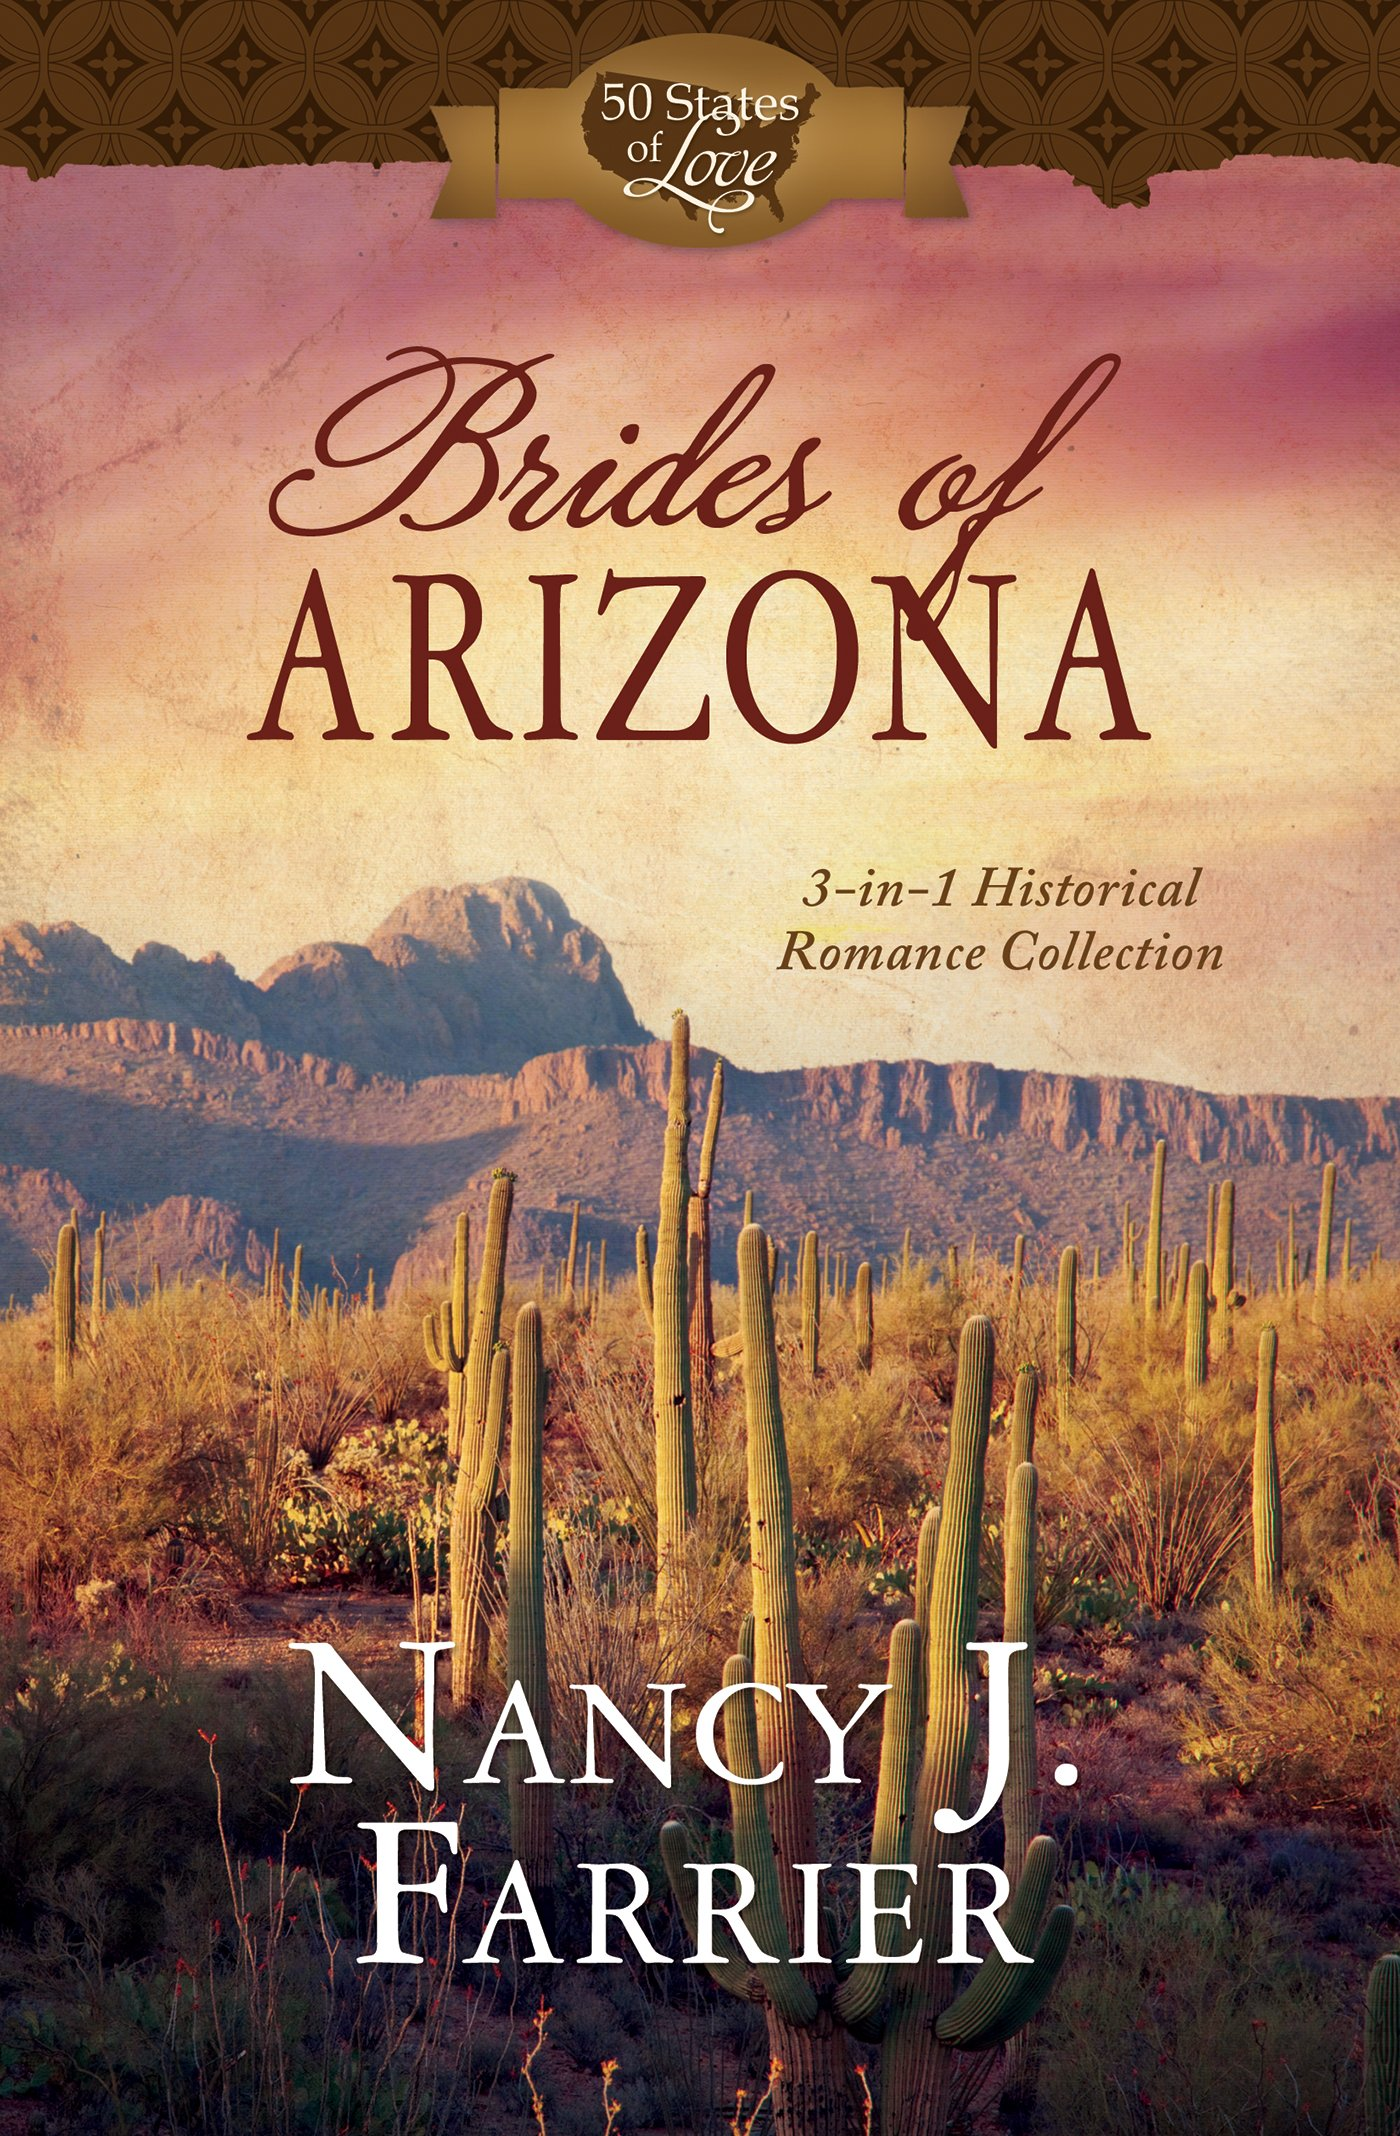 Download Brides of Arizona: 3-in-1 Historical Romance Collection (50 States of Love) pdf